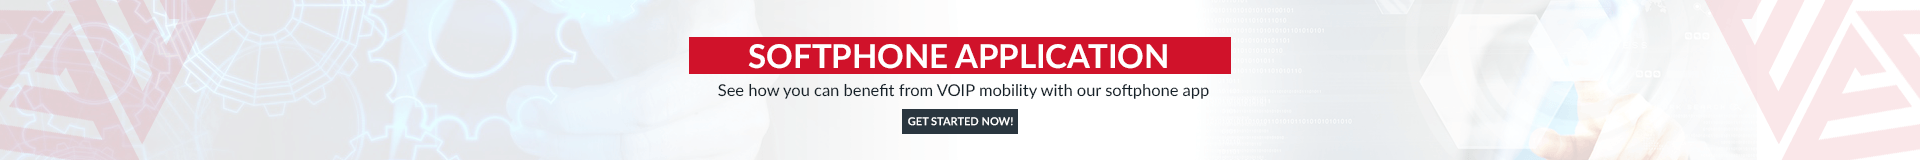 See how our VOIP softphone app can allow you increased mobility and resilience in your phone system